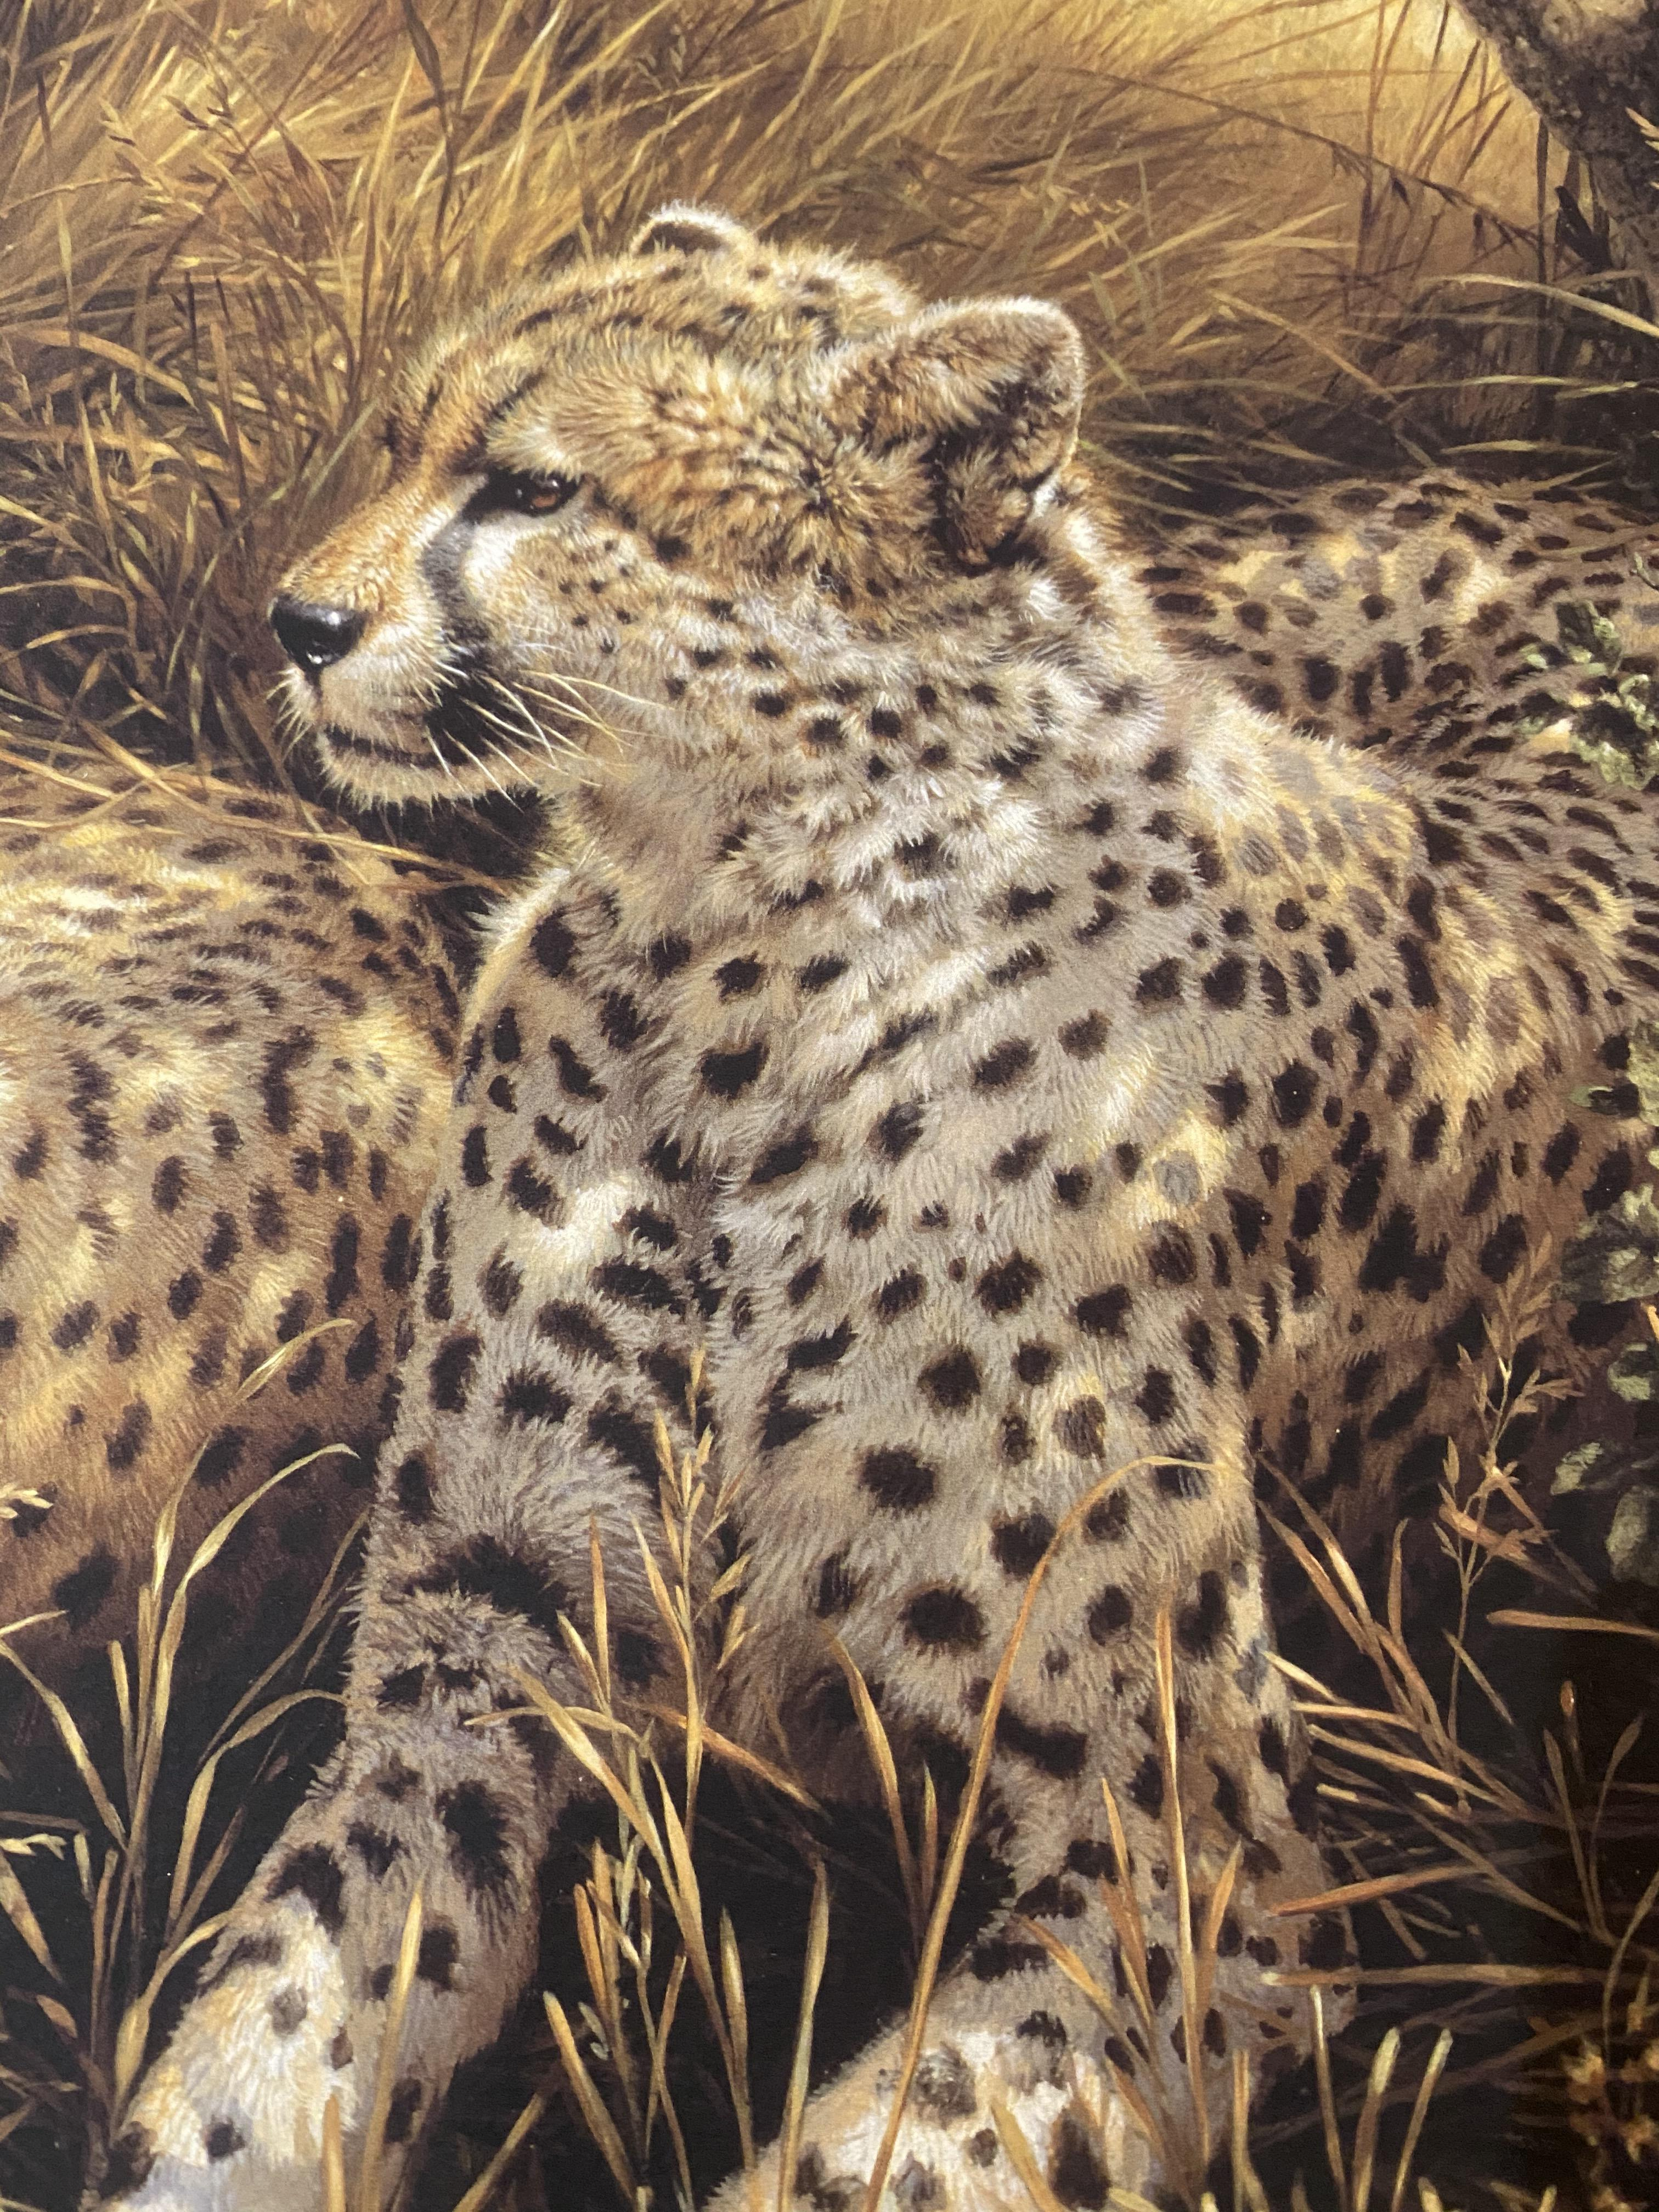 Michael Jackson Signed Limited Edition Print 'Cheetahs' With C.O.A. - Image 6 of 7